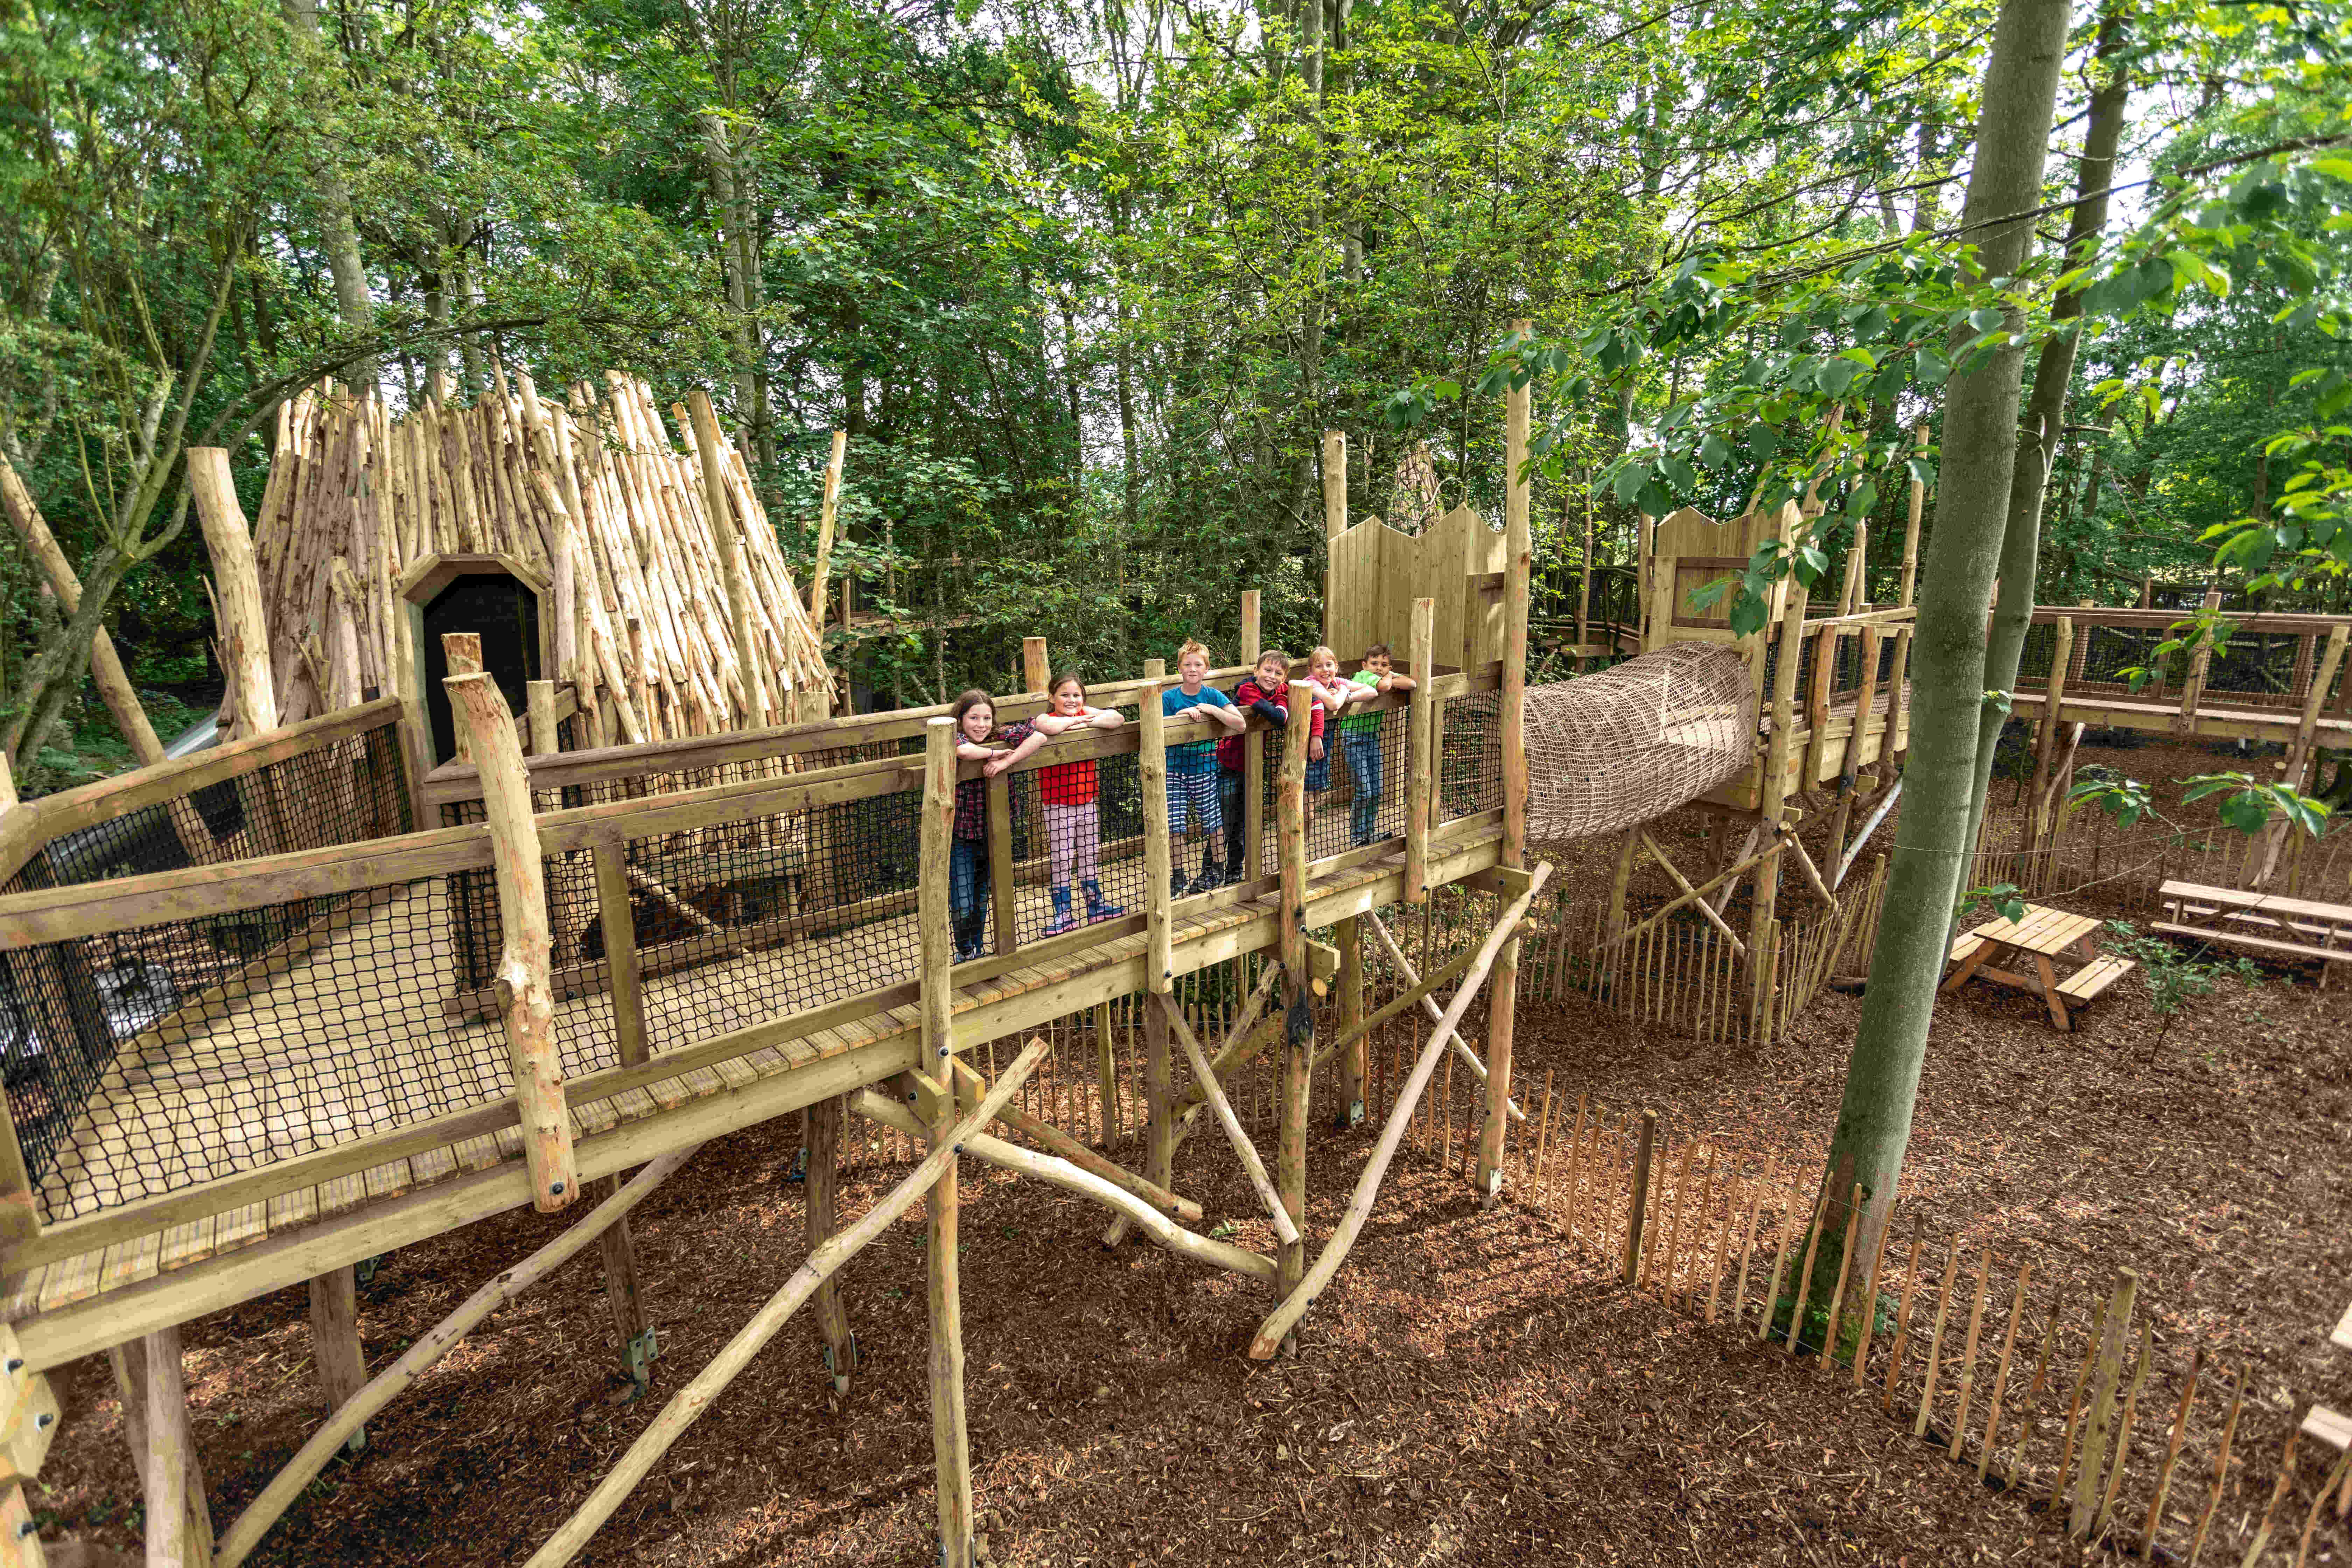 Little Vikings   Things To Do In York For Kids